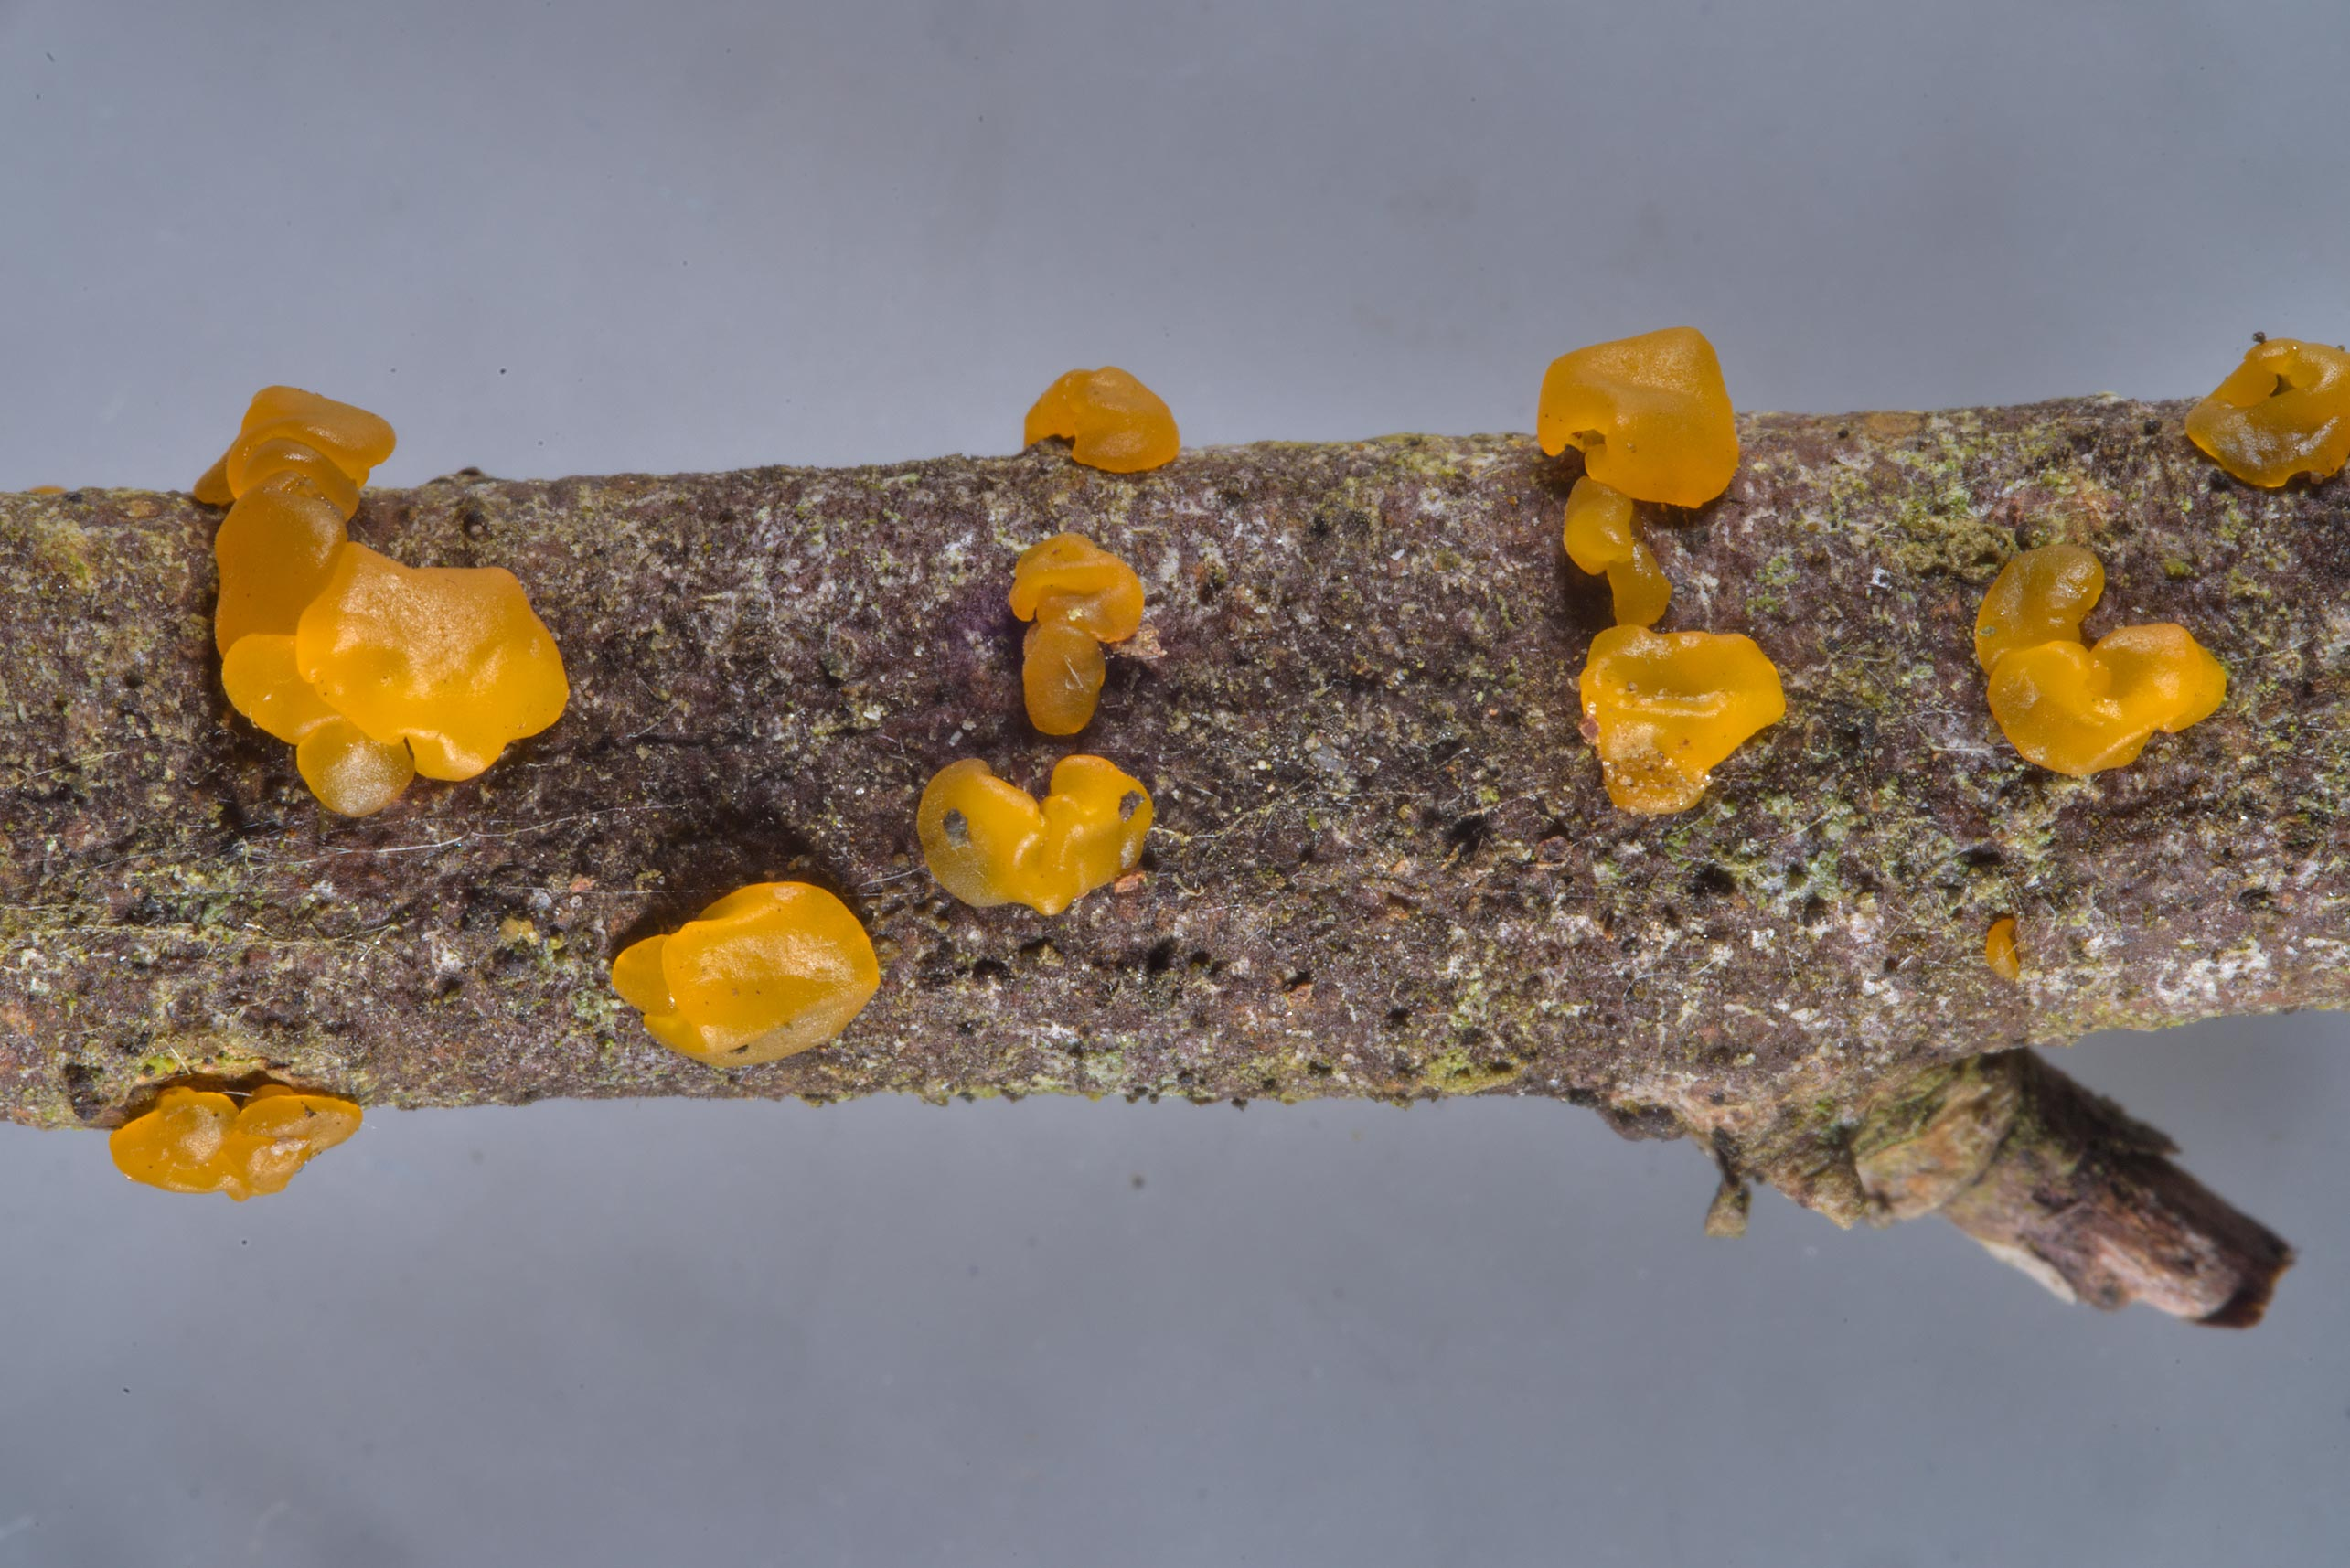 Jelly mushrooms Dacrymyces lacrymalis on a twig...north-west from St.Petersburg. Russia